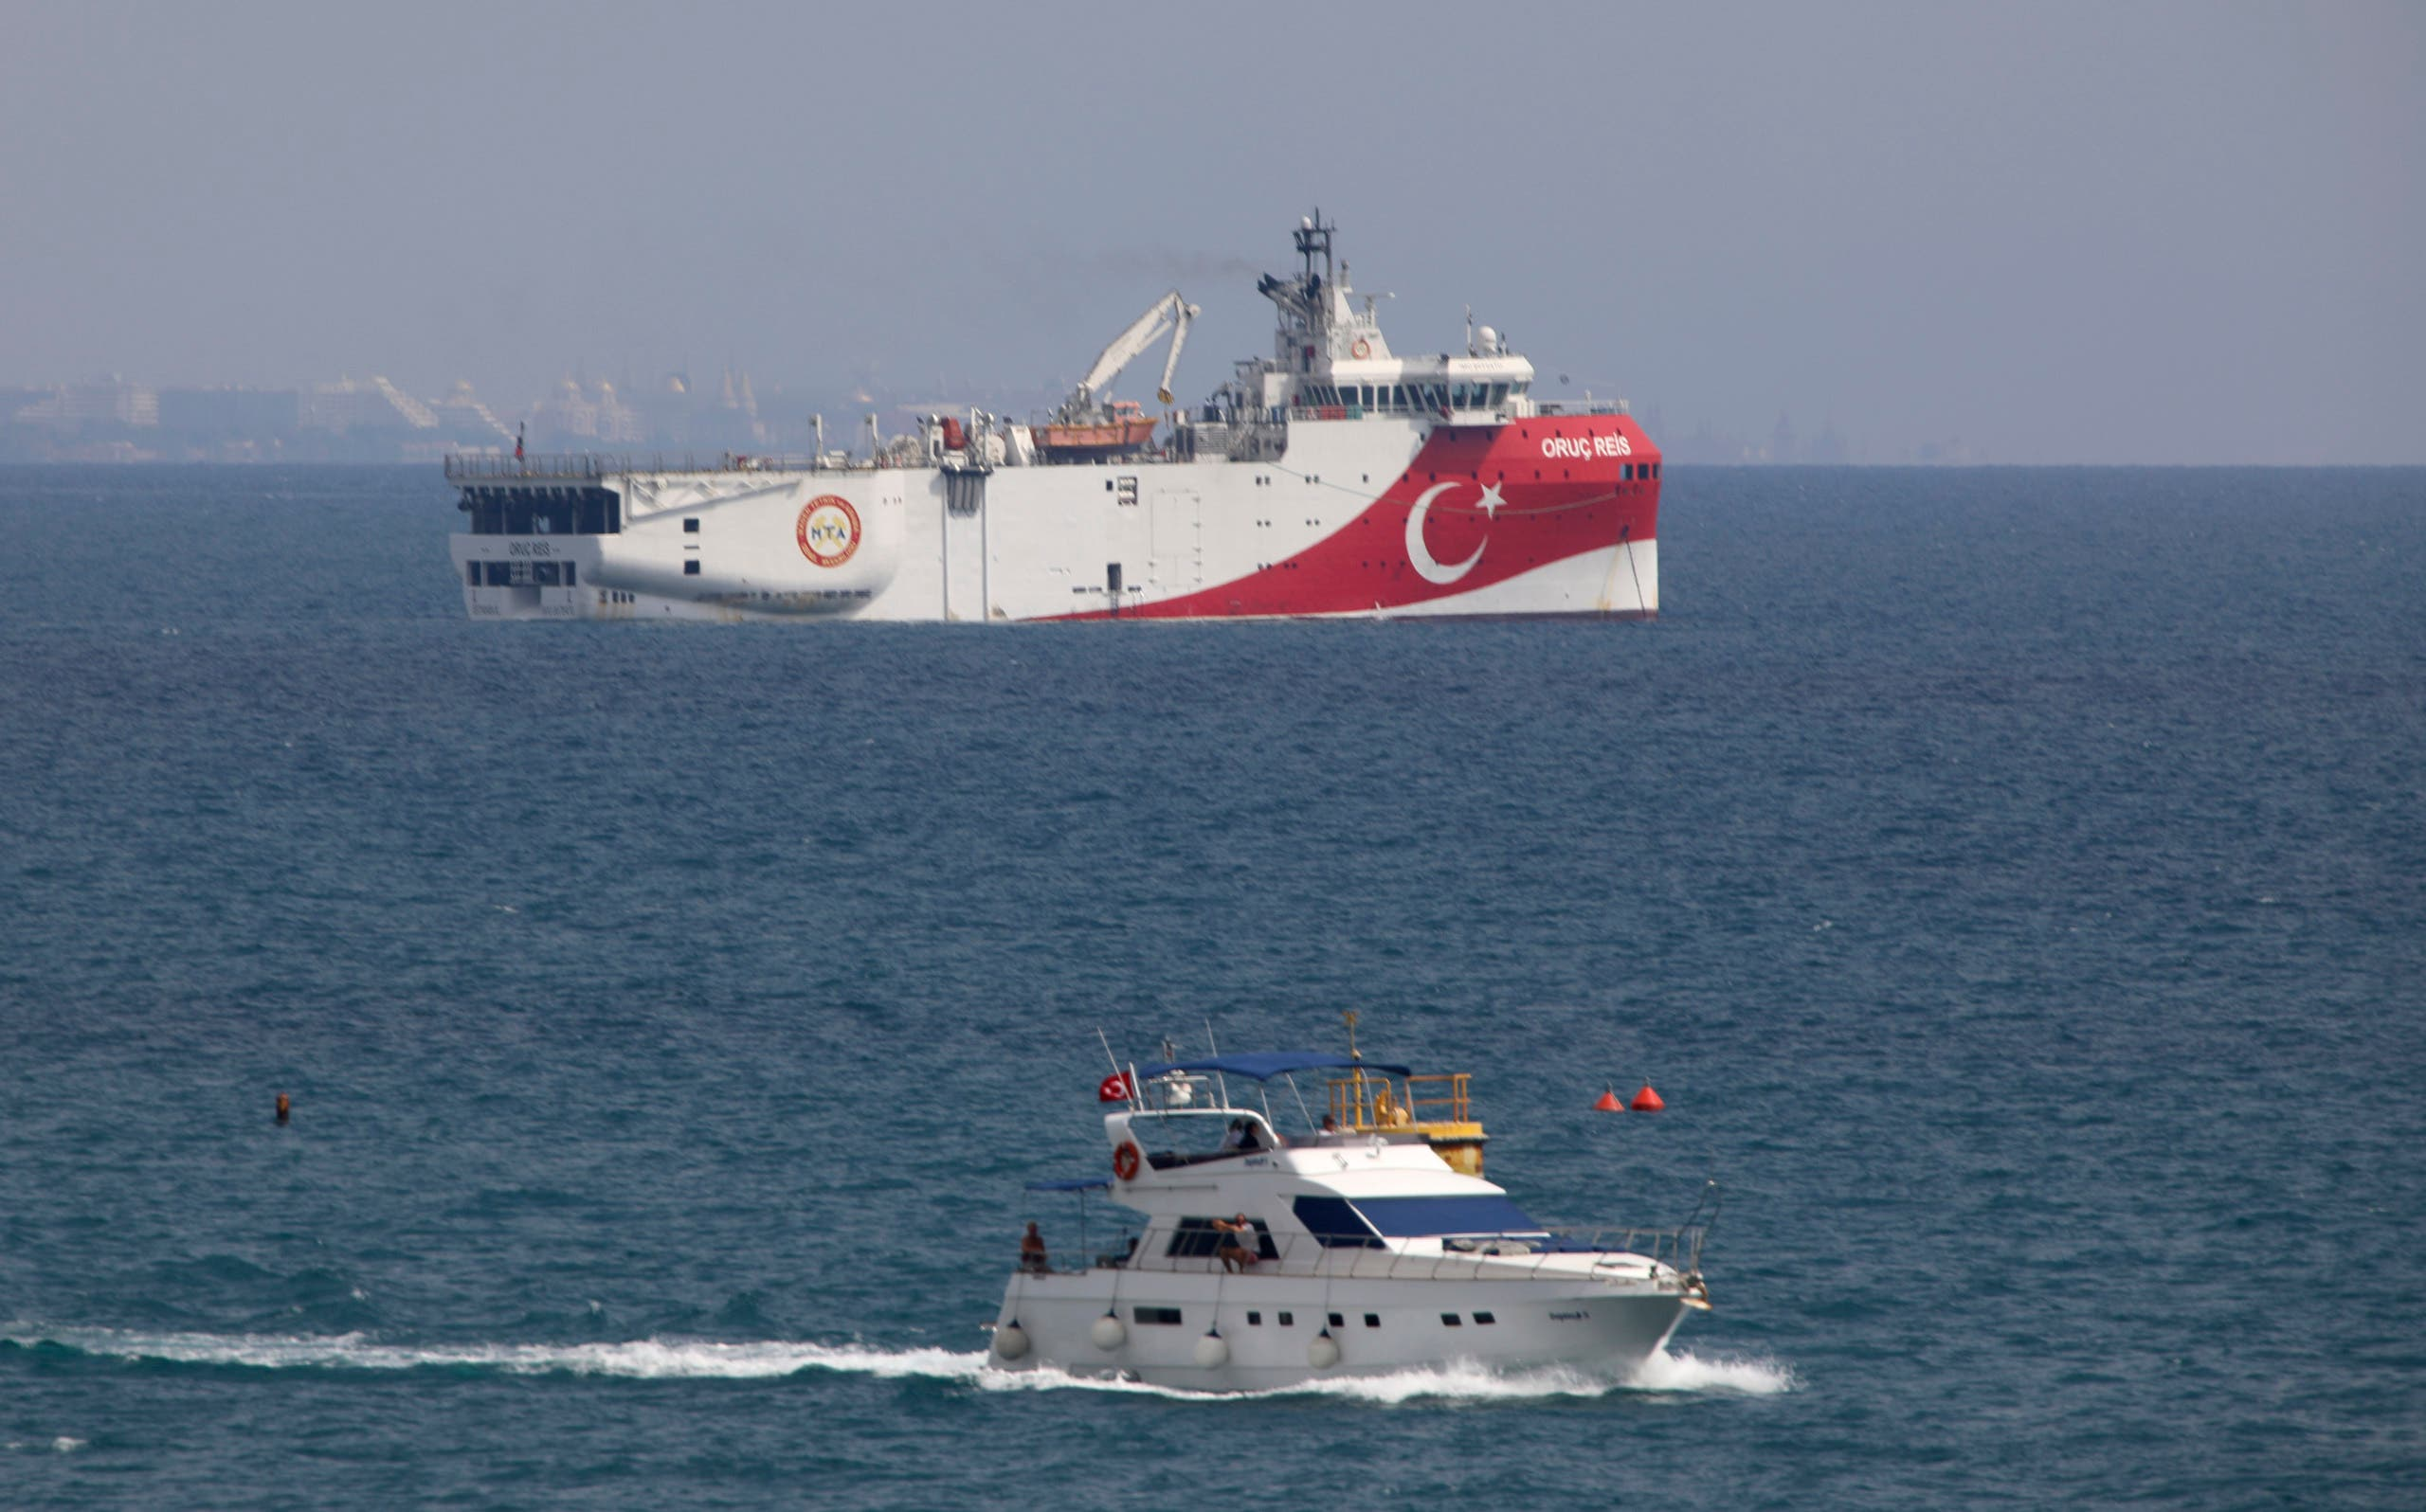 A view of Turkey's research vessel, Oruc Reis anchored off the coast of Antalya on the Mediterranean on Sept. 27, 2020. (AP)